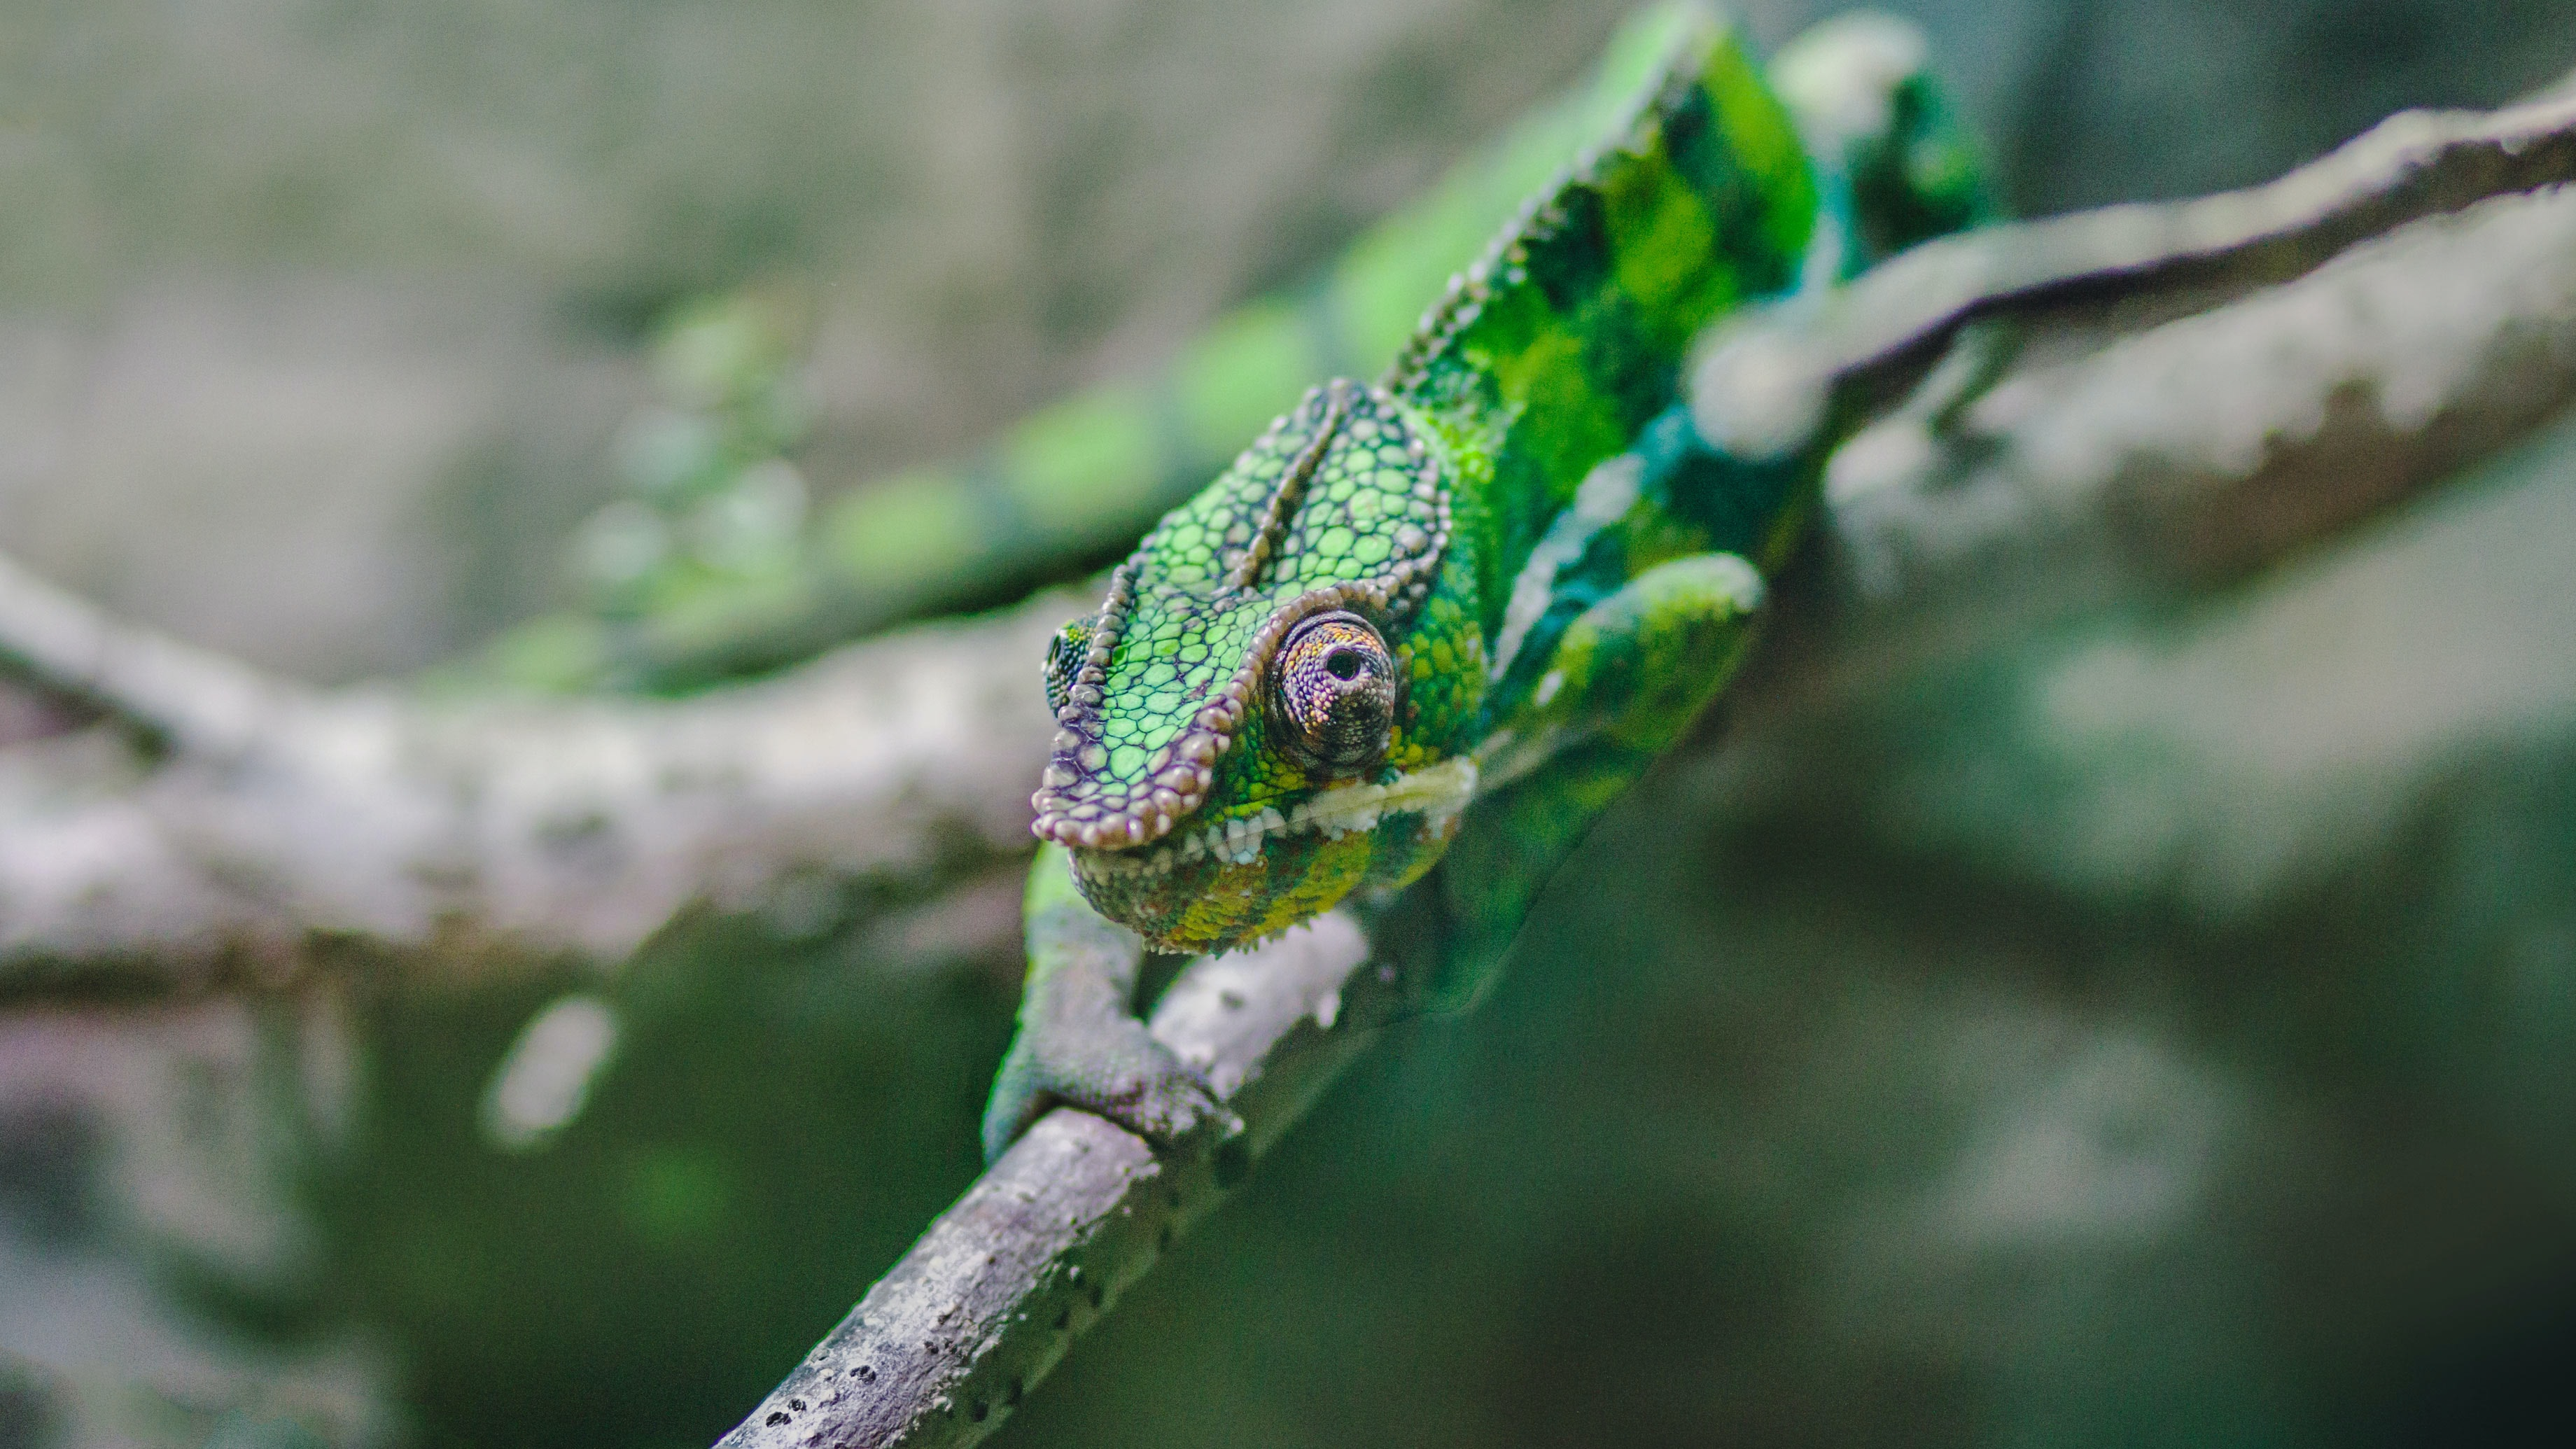 photo of chameleon on tree branch